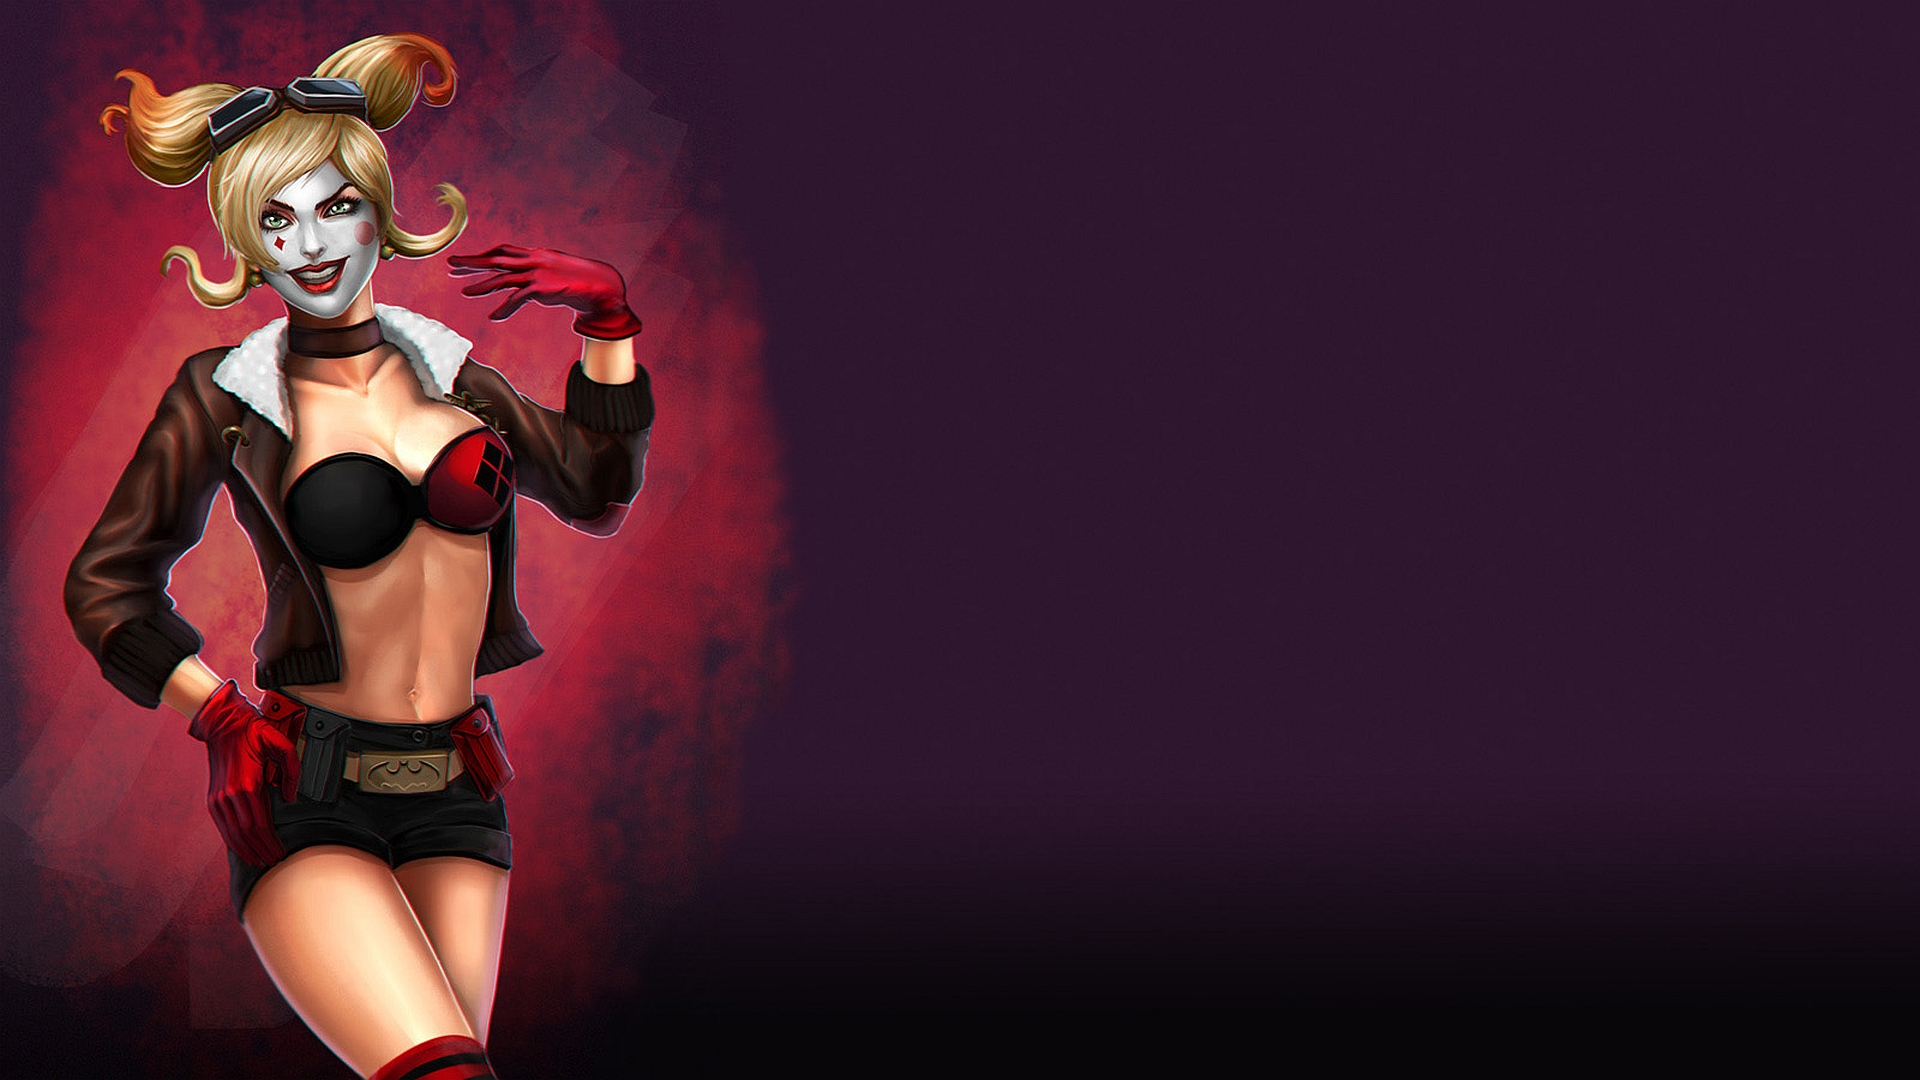 Harley Quinn Wallpapers Background ~ Sdeerwallpaper